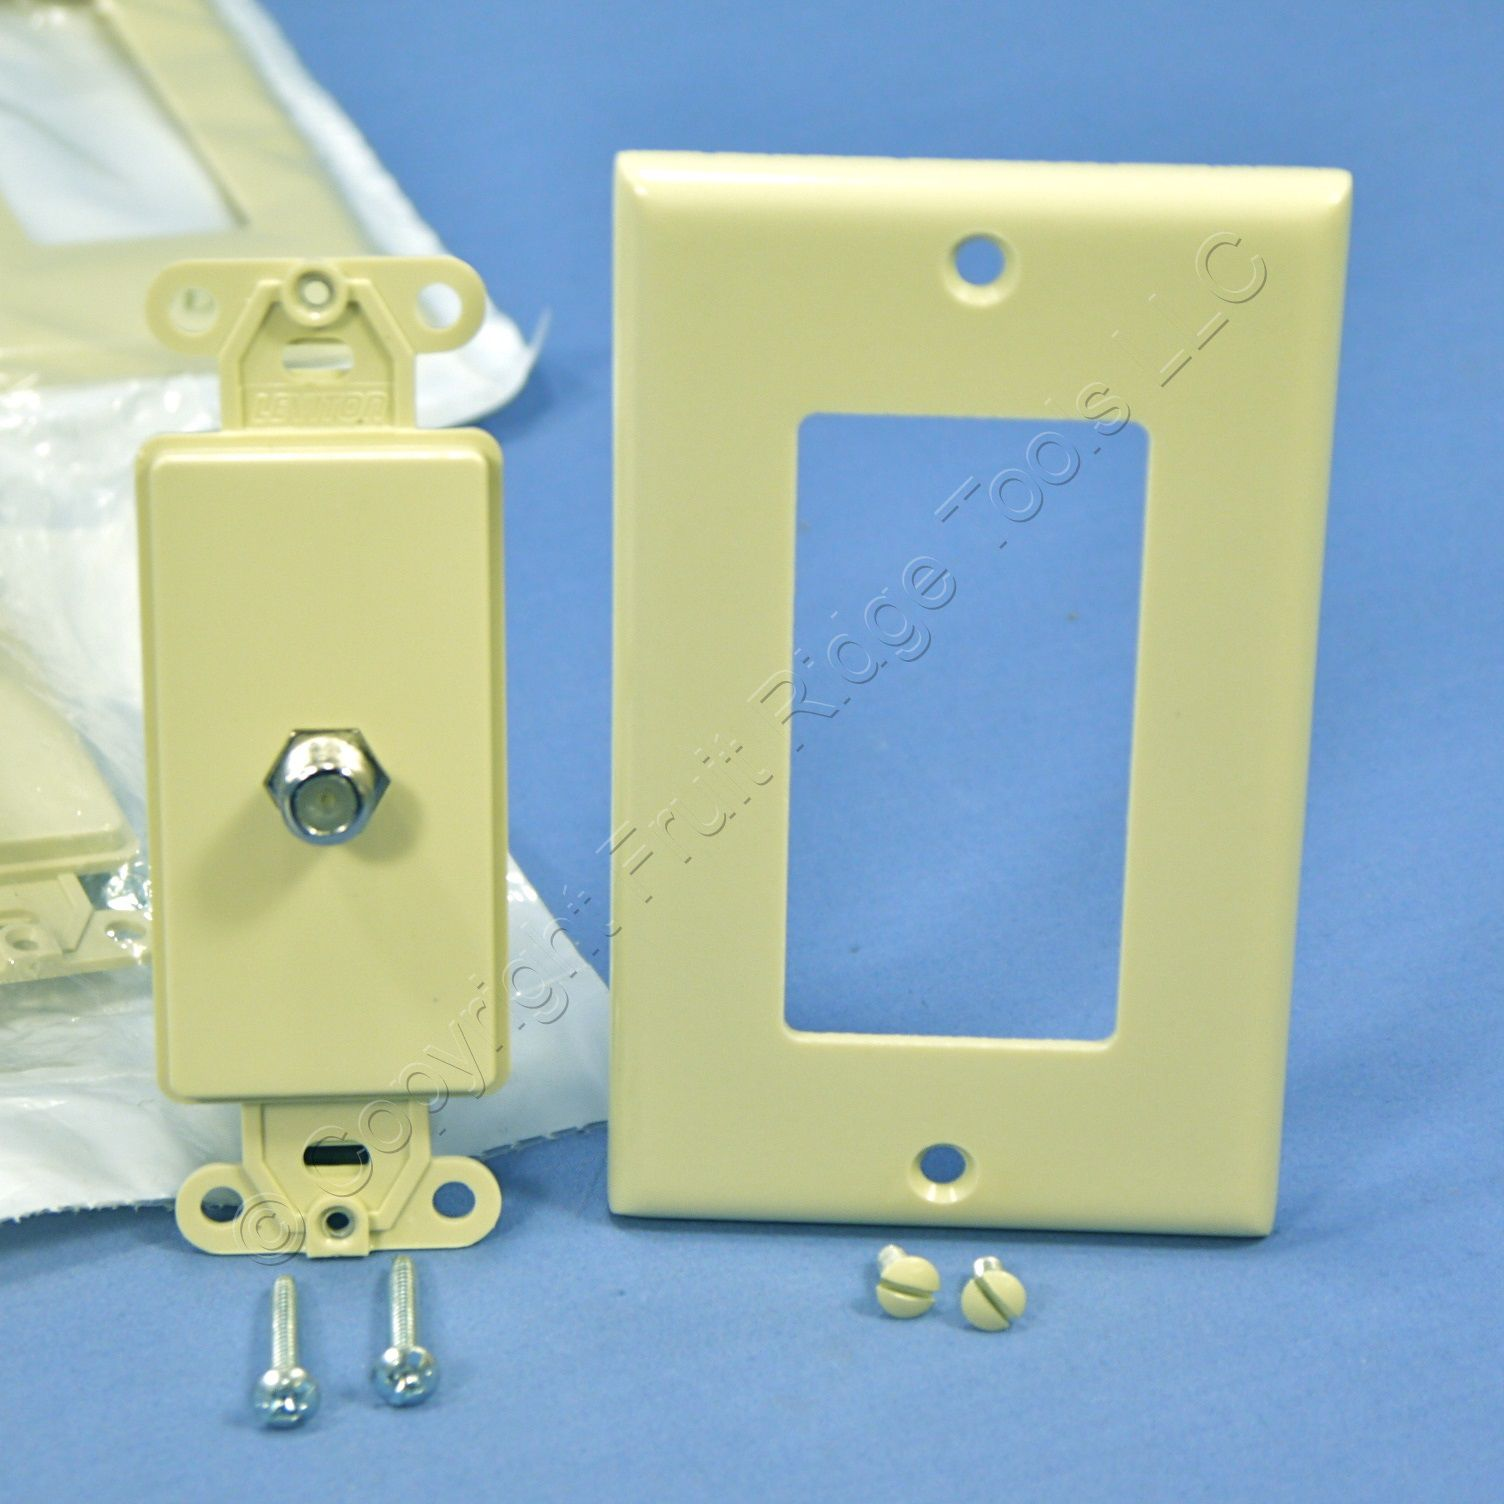 Buy 10 Ivory Leviton Decora Coaxial Cable CATV Wall Plate Video Jack ...